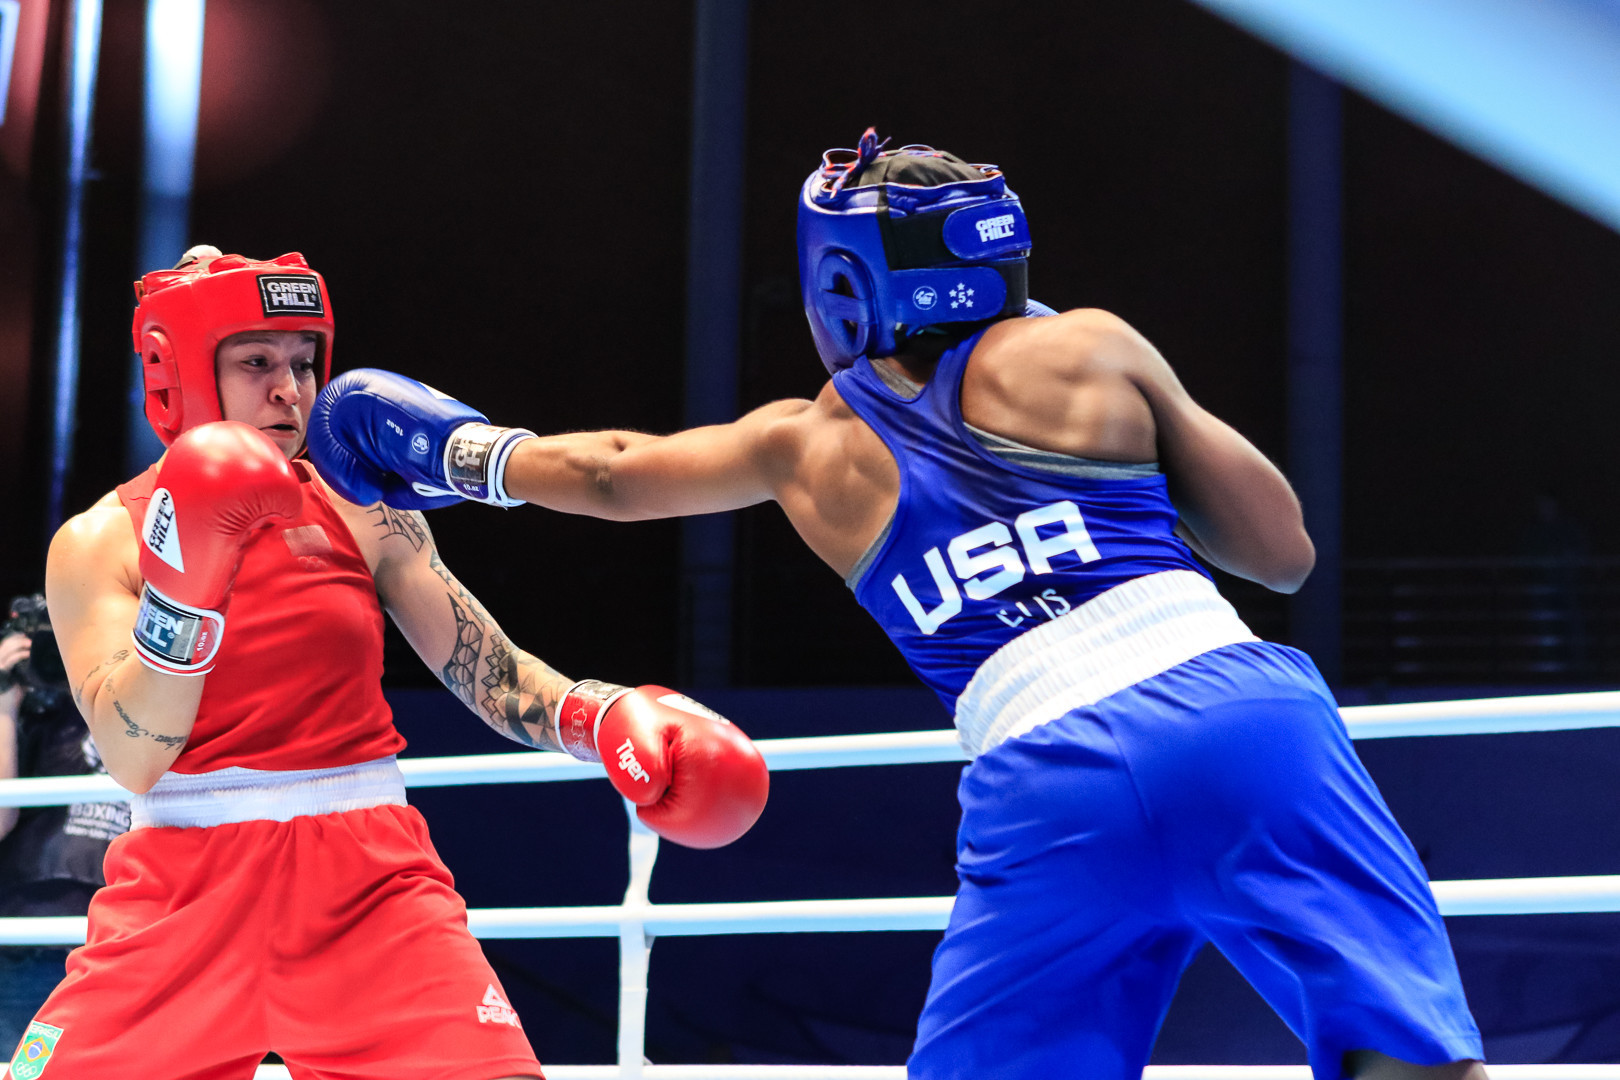 Pan American Games lightweight champion Beatriz Ferreira made the final with a 4-1 result over Rashida Ellis of the US ©AIBA